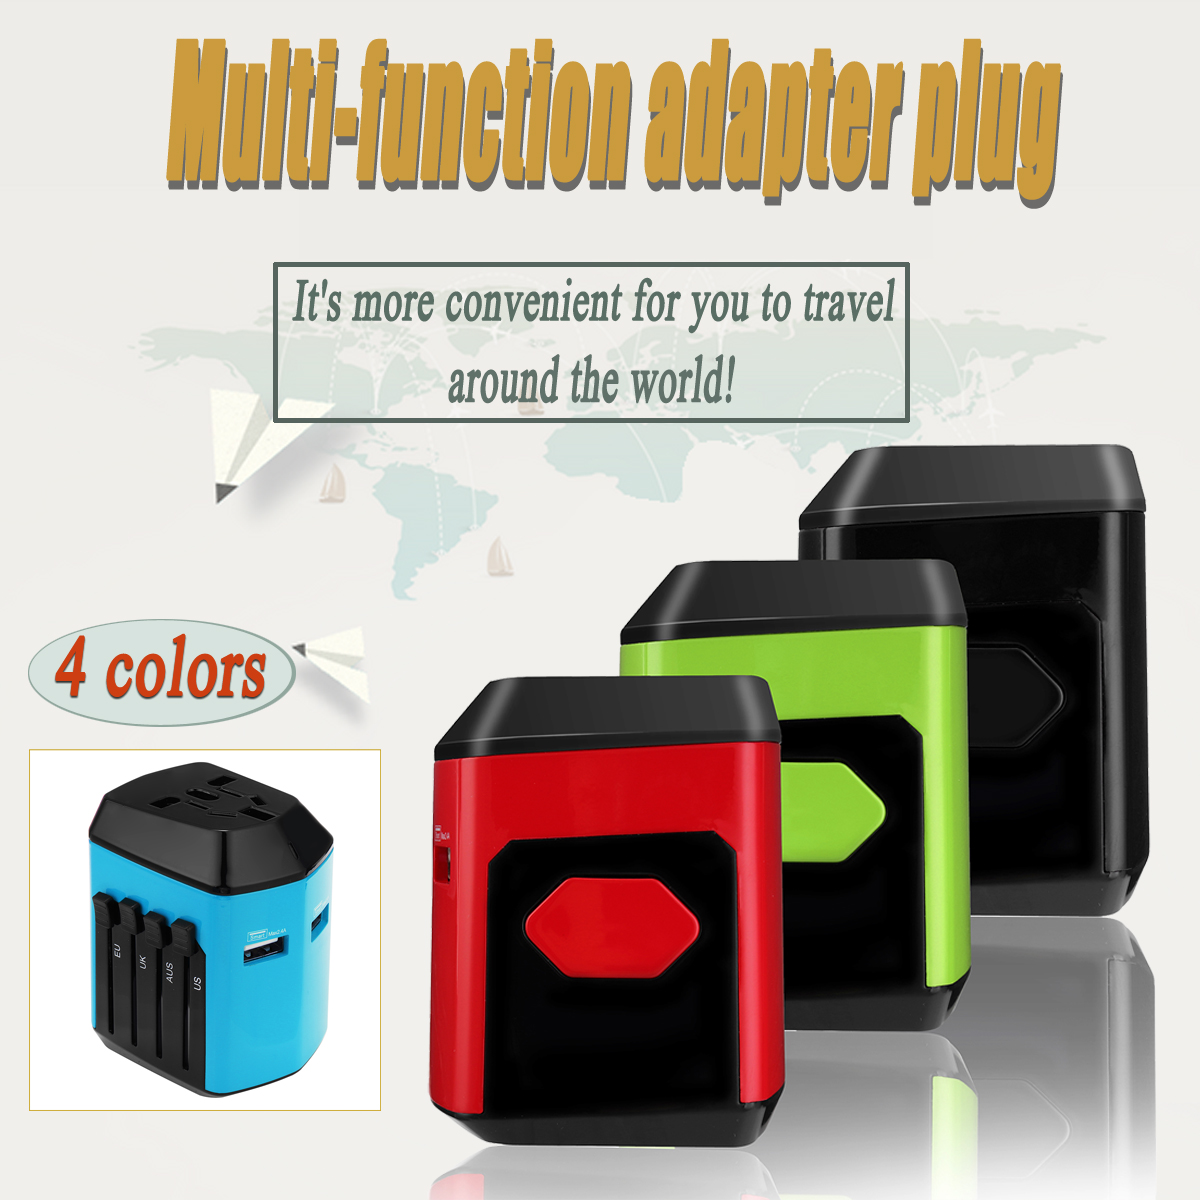 Dual USB Universal Travel AC Power Charger Adapter Socket Plug Converter UK/US/EU/AU